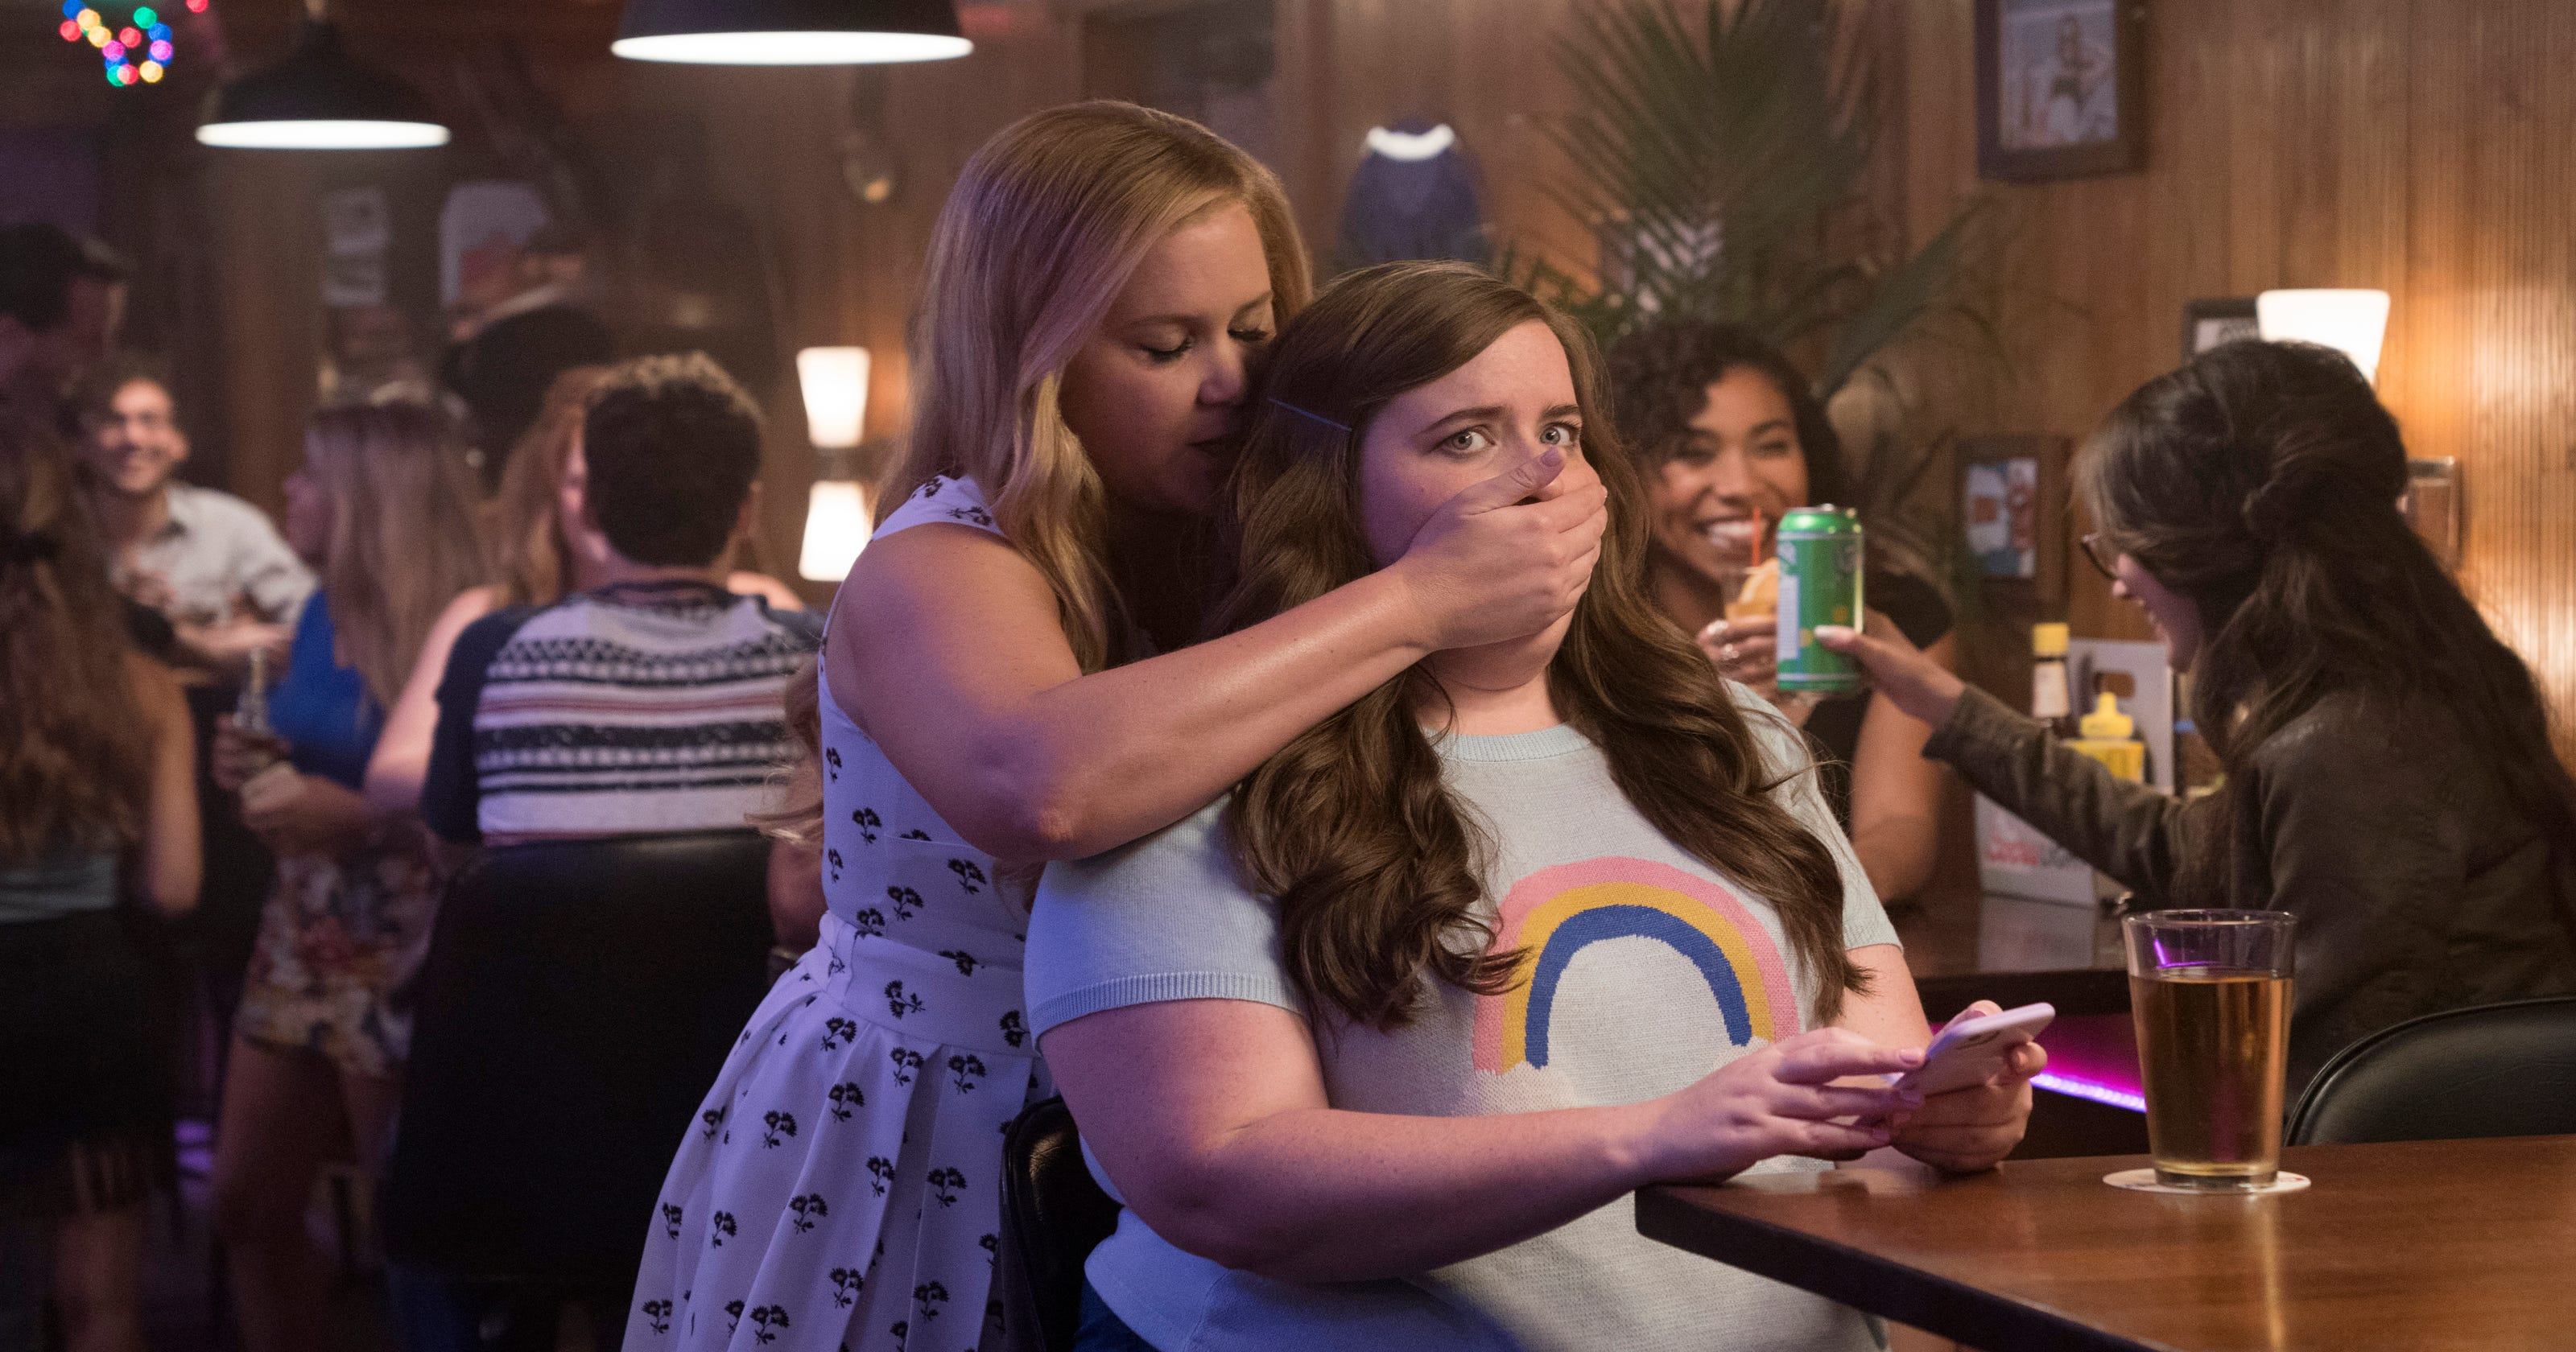 Amy Schumer Nude Scene review: in amy schumer's 'i feel pretty,' something isn't